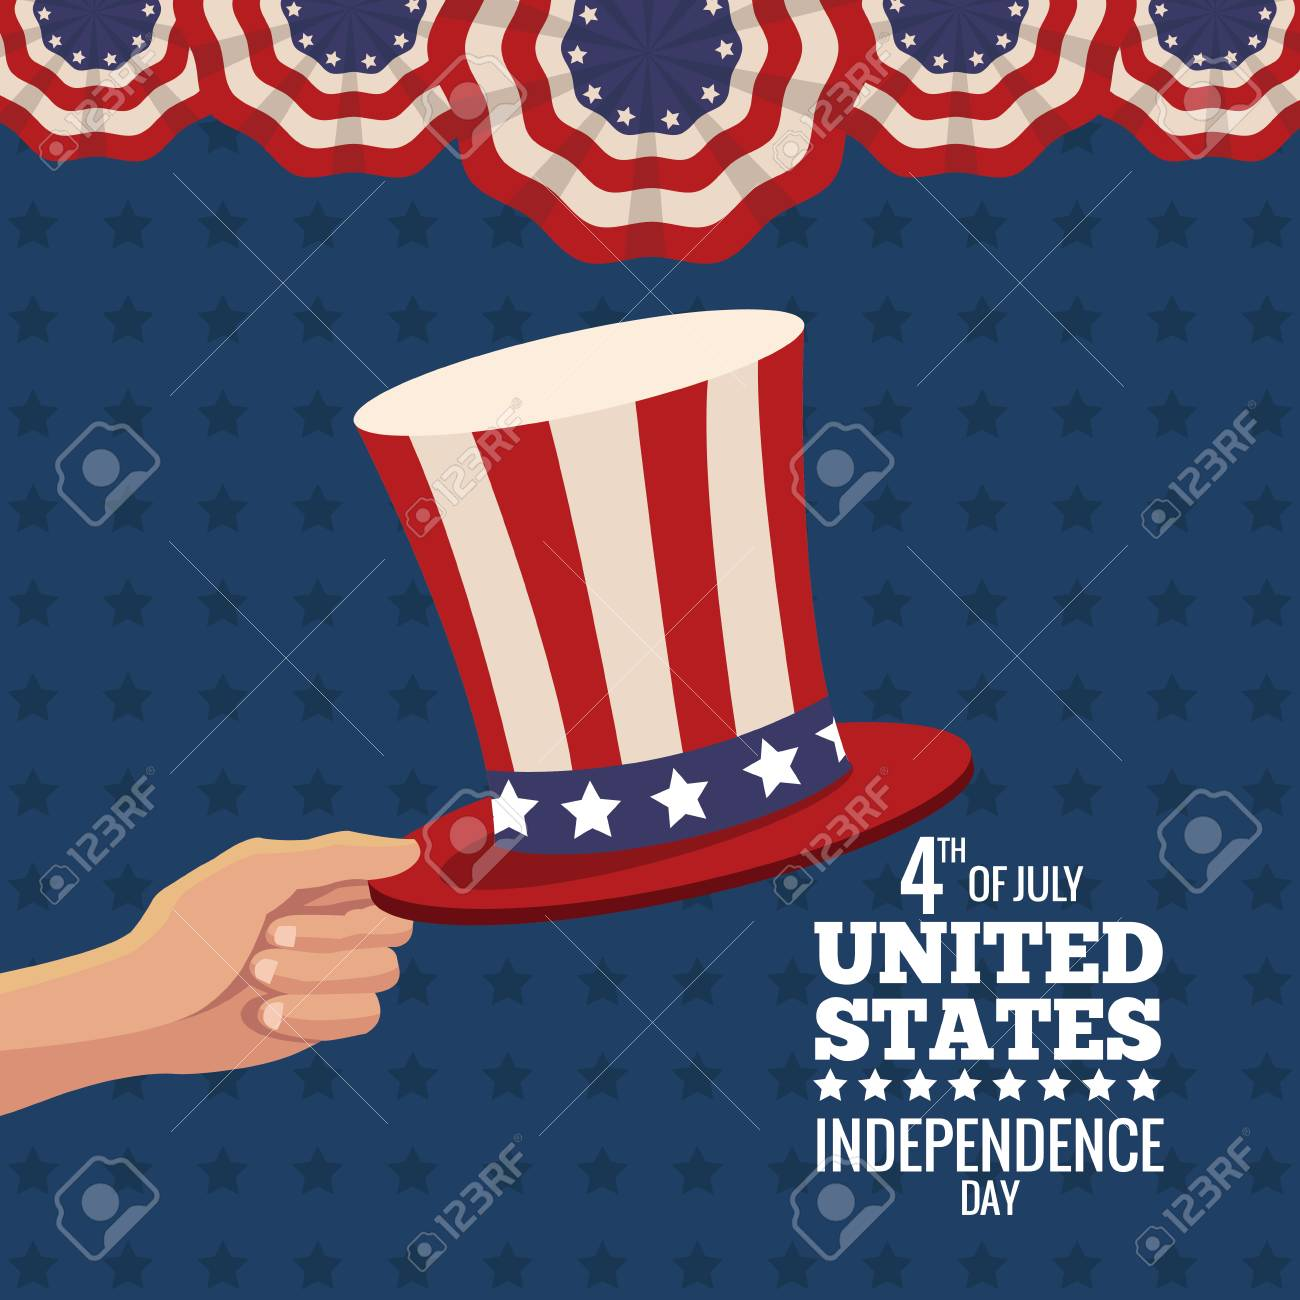 c8b3396c355 hand holding hat united states independence day vector illustration eps 10 Stock  Vector - 76516730